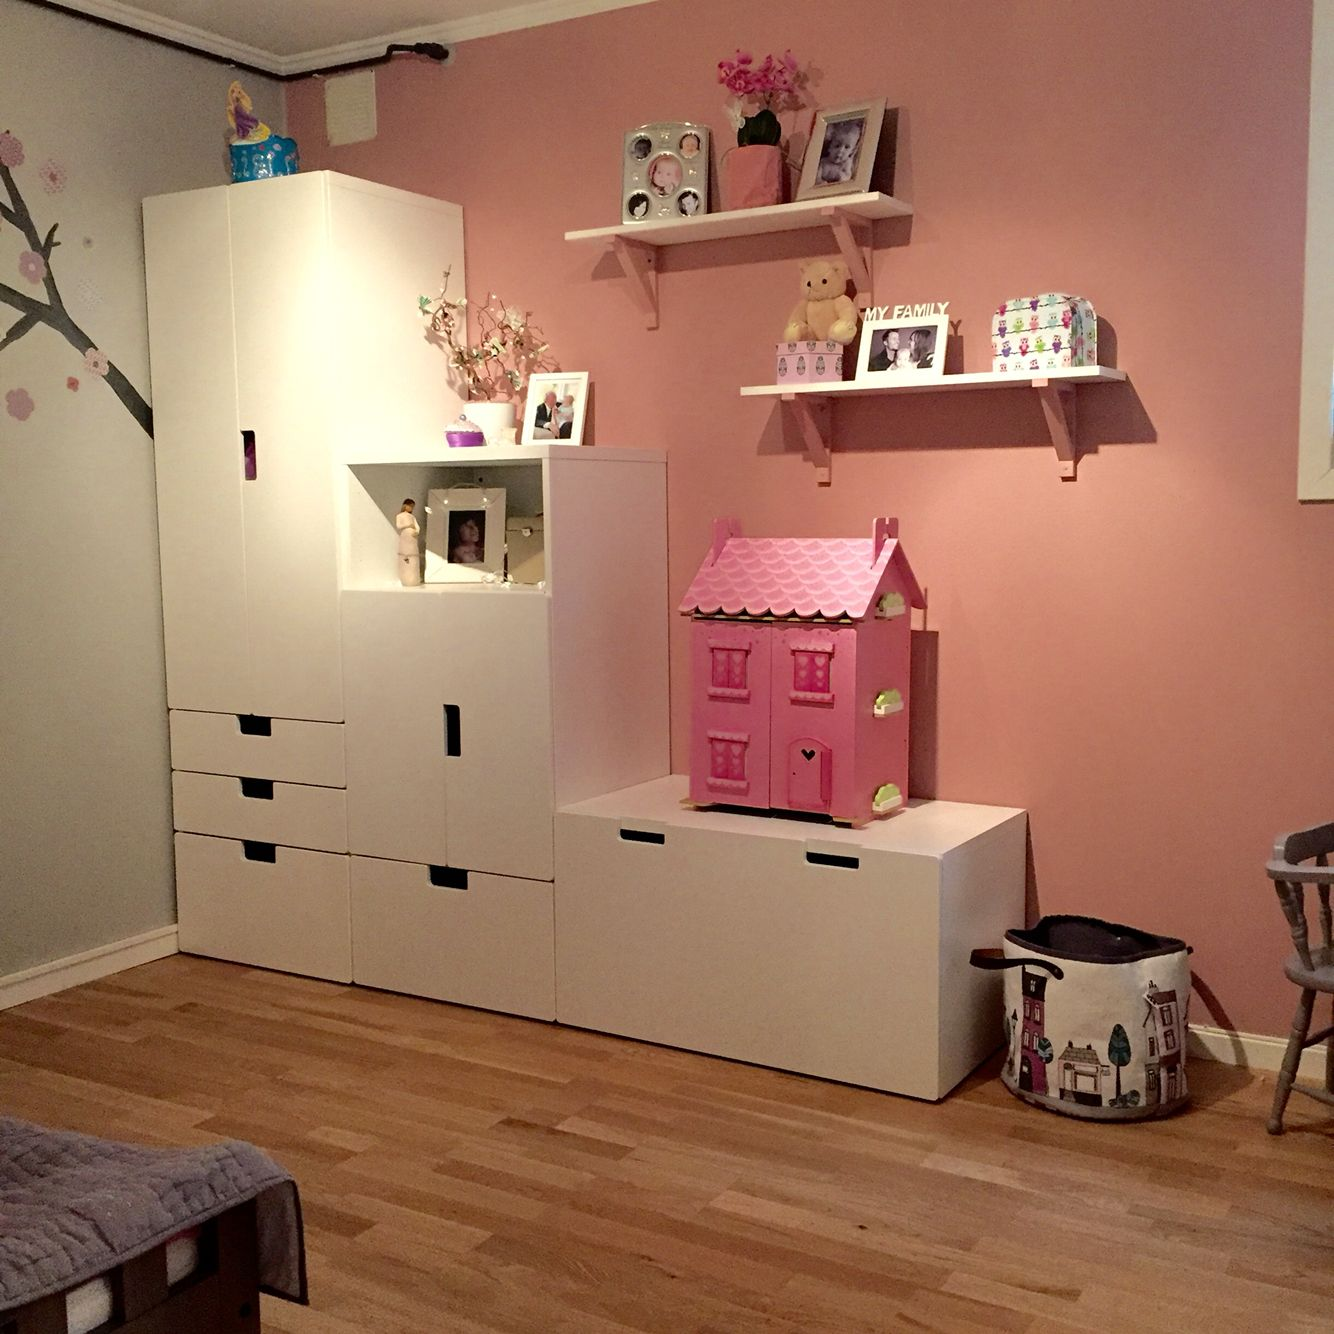 Dormitorio Niña Ikea Girlsroom Stuva Ikea Ideas Pinterest Decoración